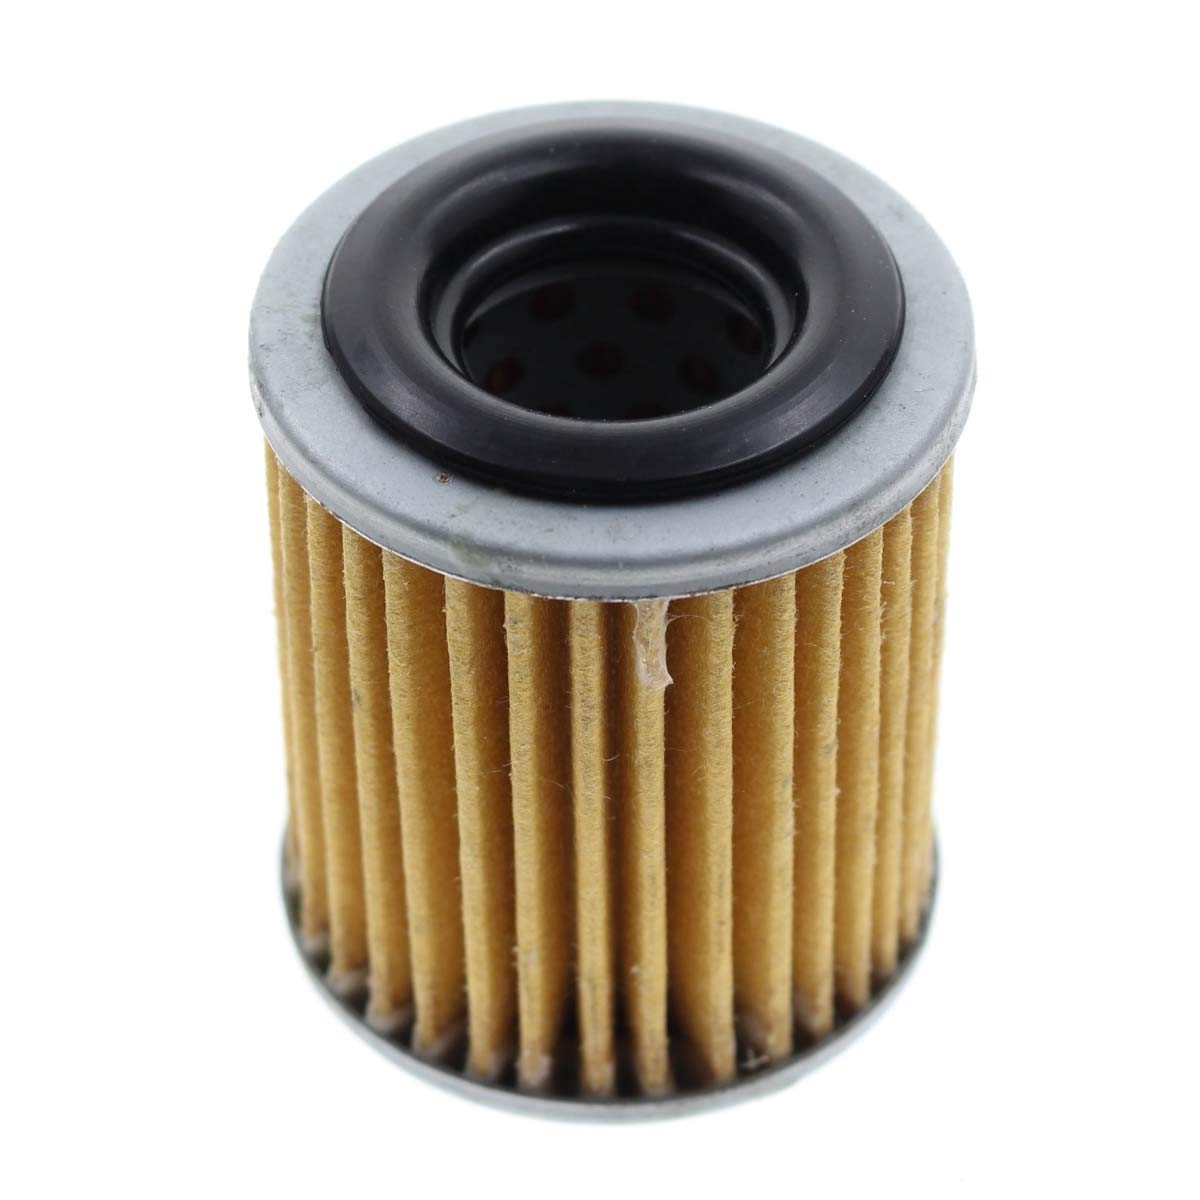 AUTOKAY CVT Transmission Oil Cooler Filter Fits for Mitsubishi Lancer Outlander Sport